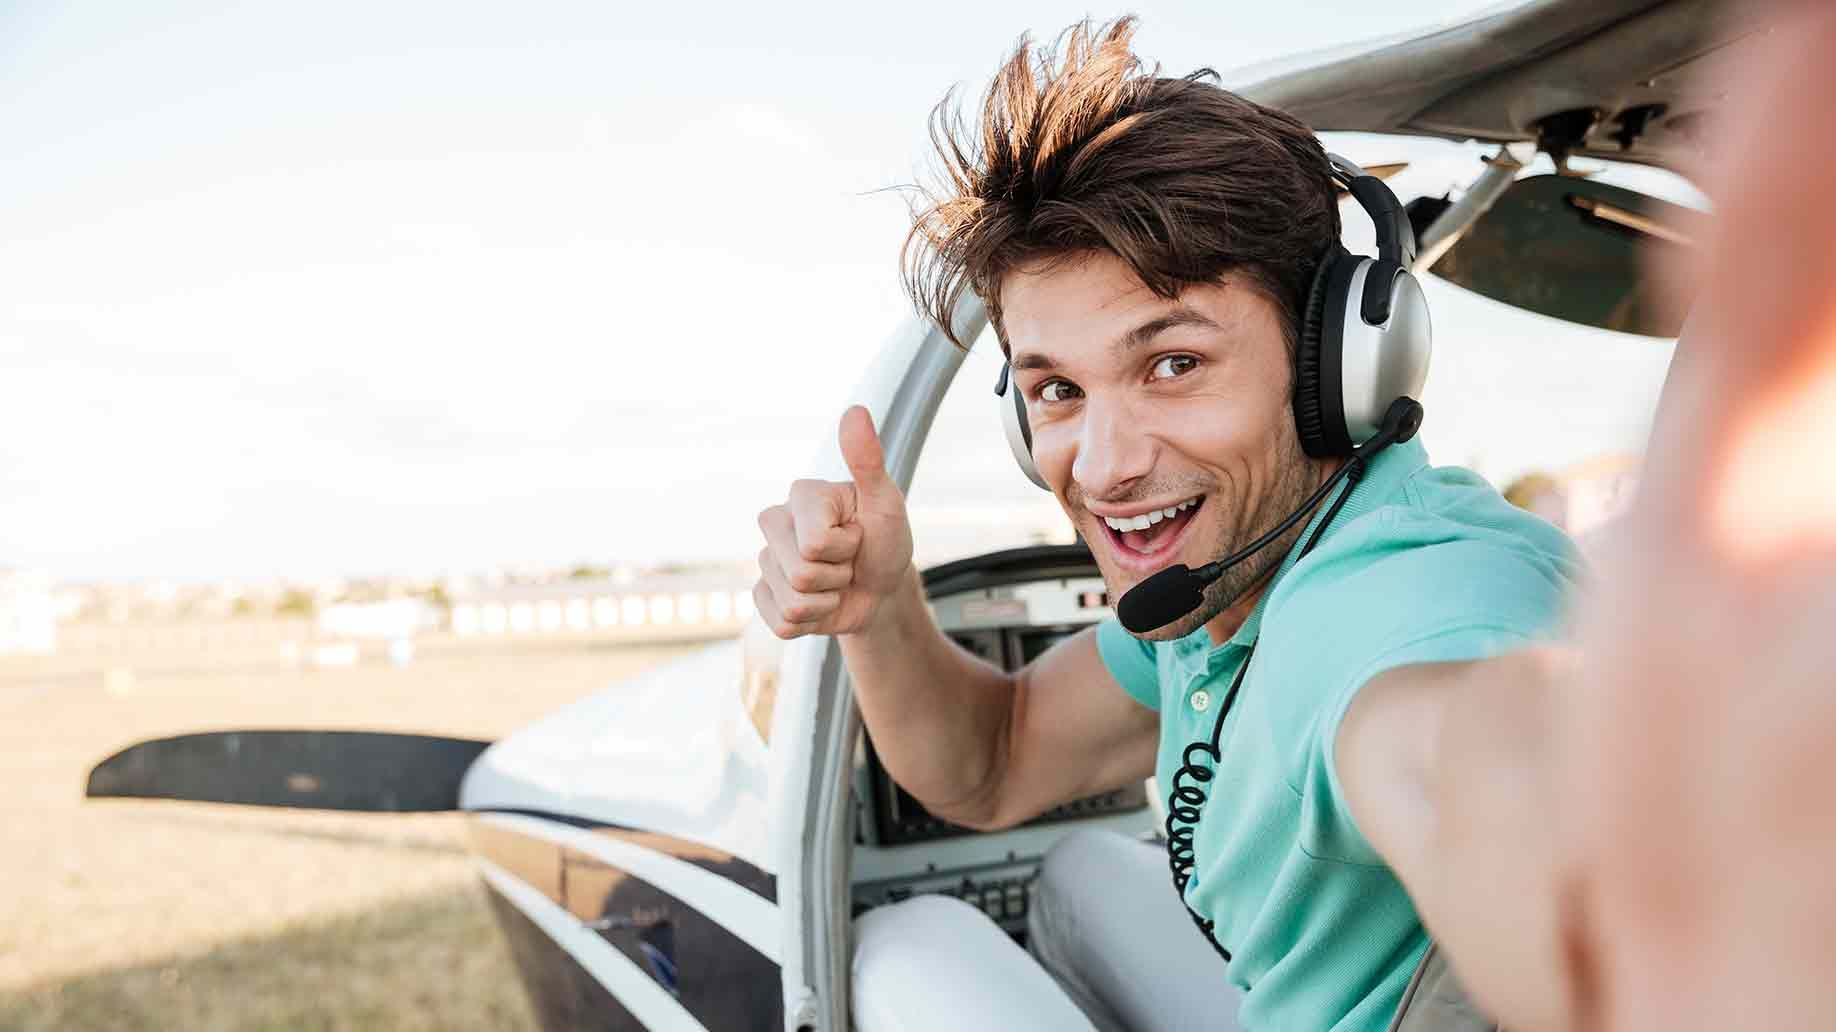 Sport Pilot License Training, Cost & Requirements to Fly